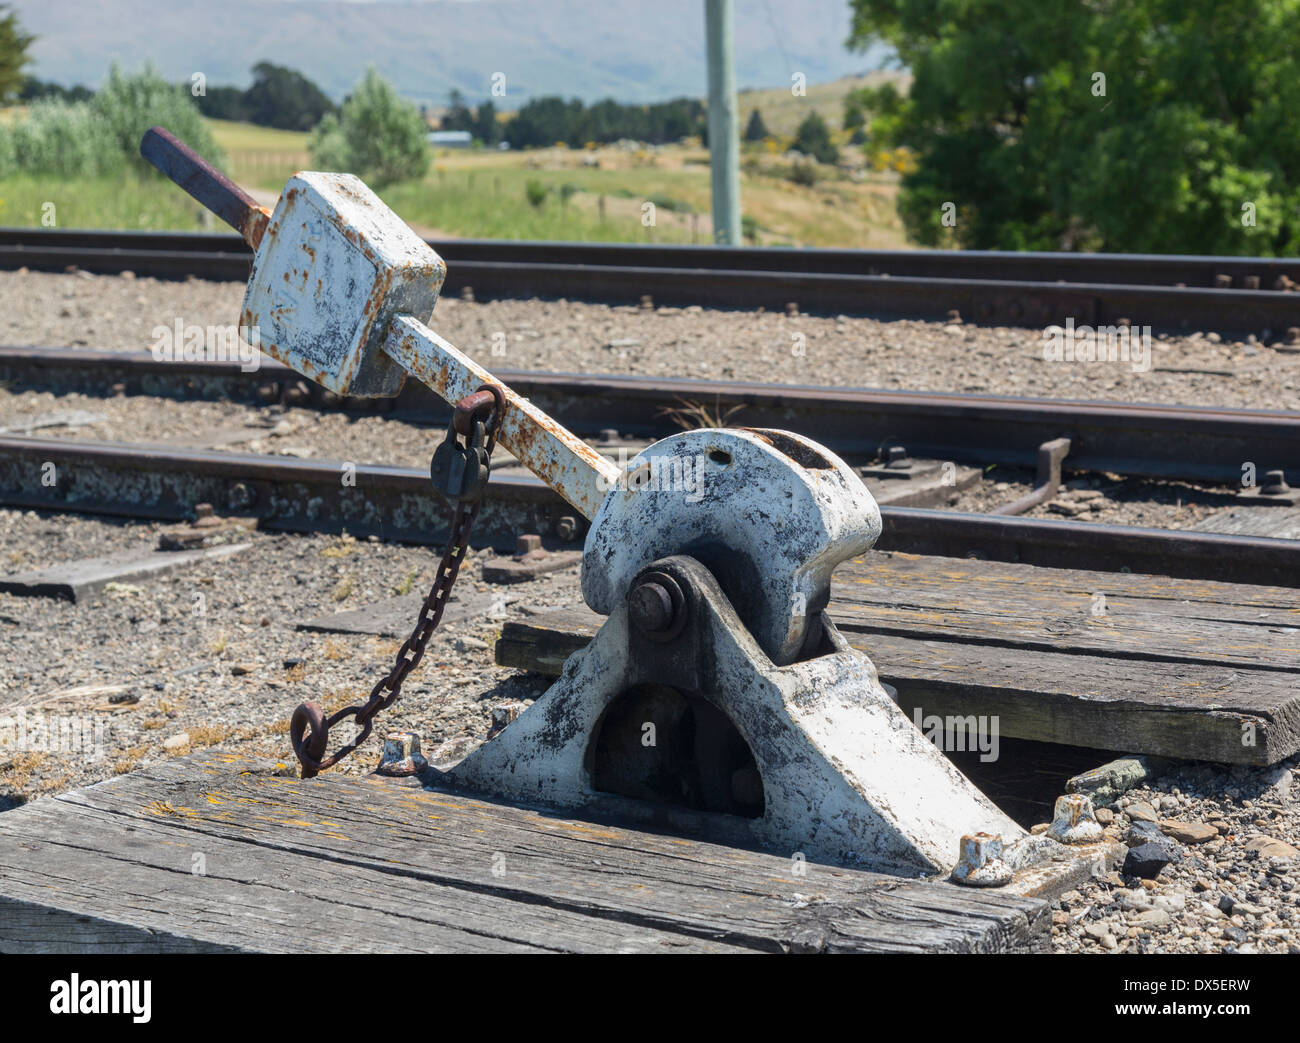 Old heavy duty points lever by railway track - Stock Image